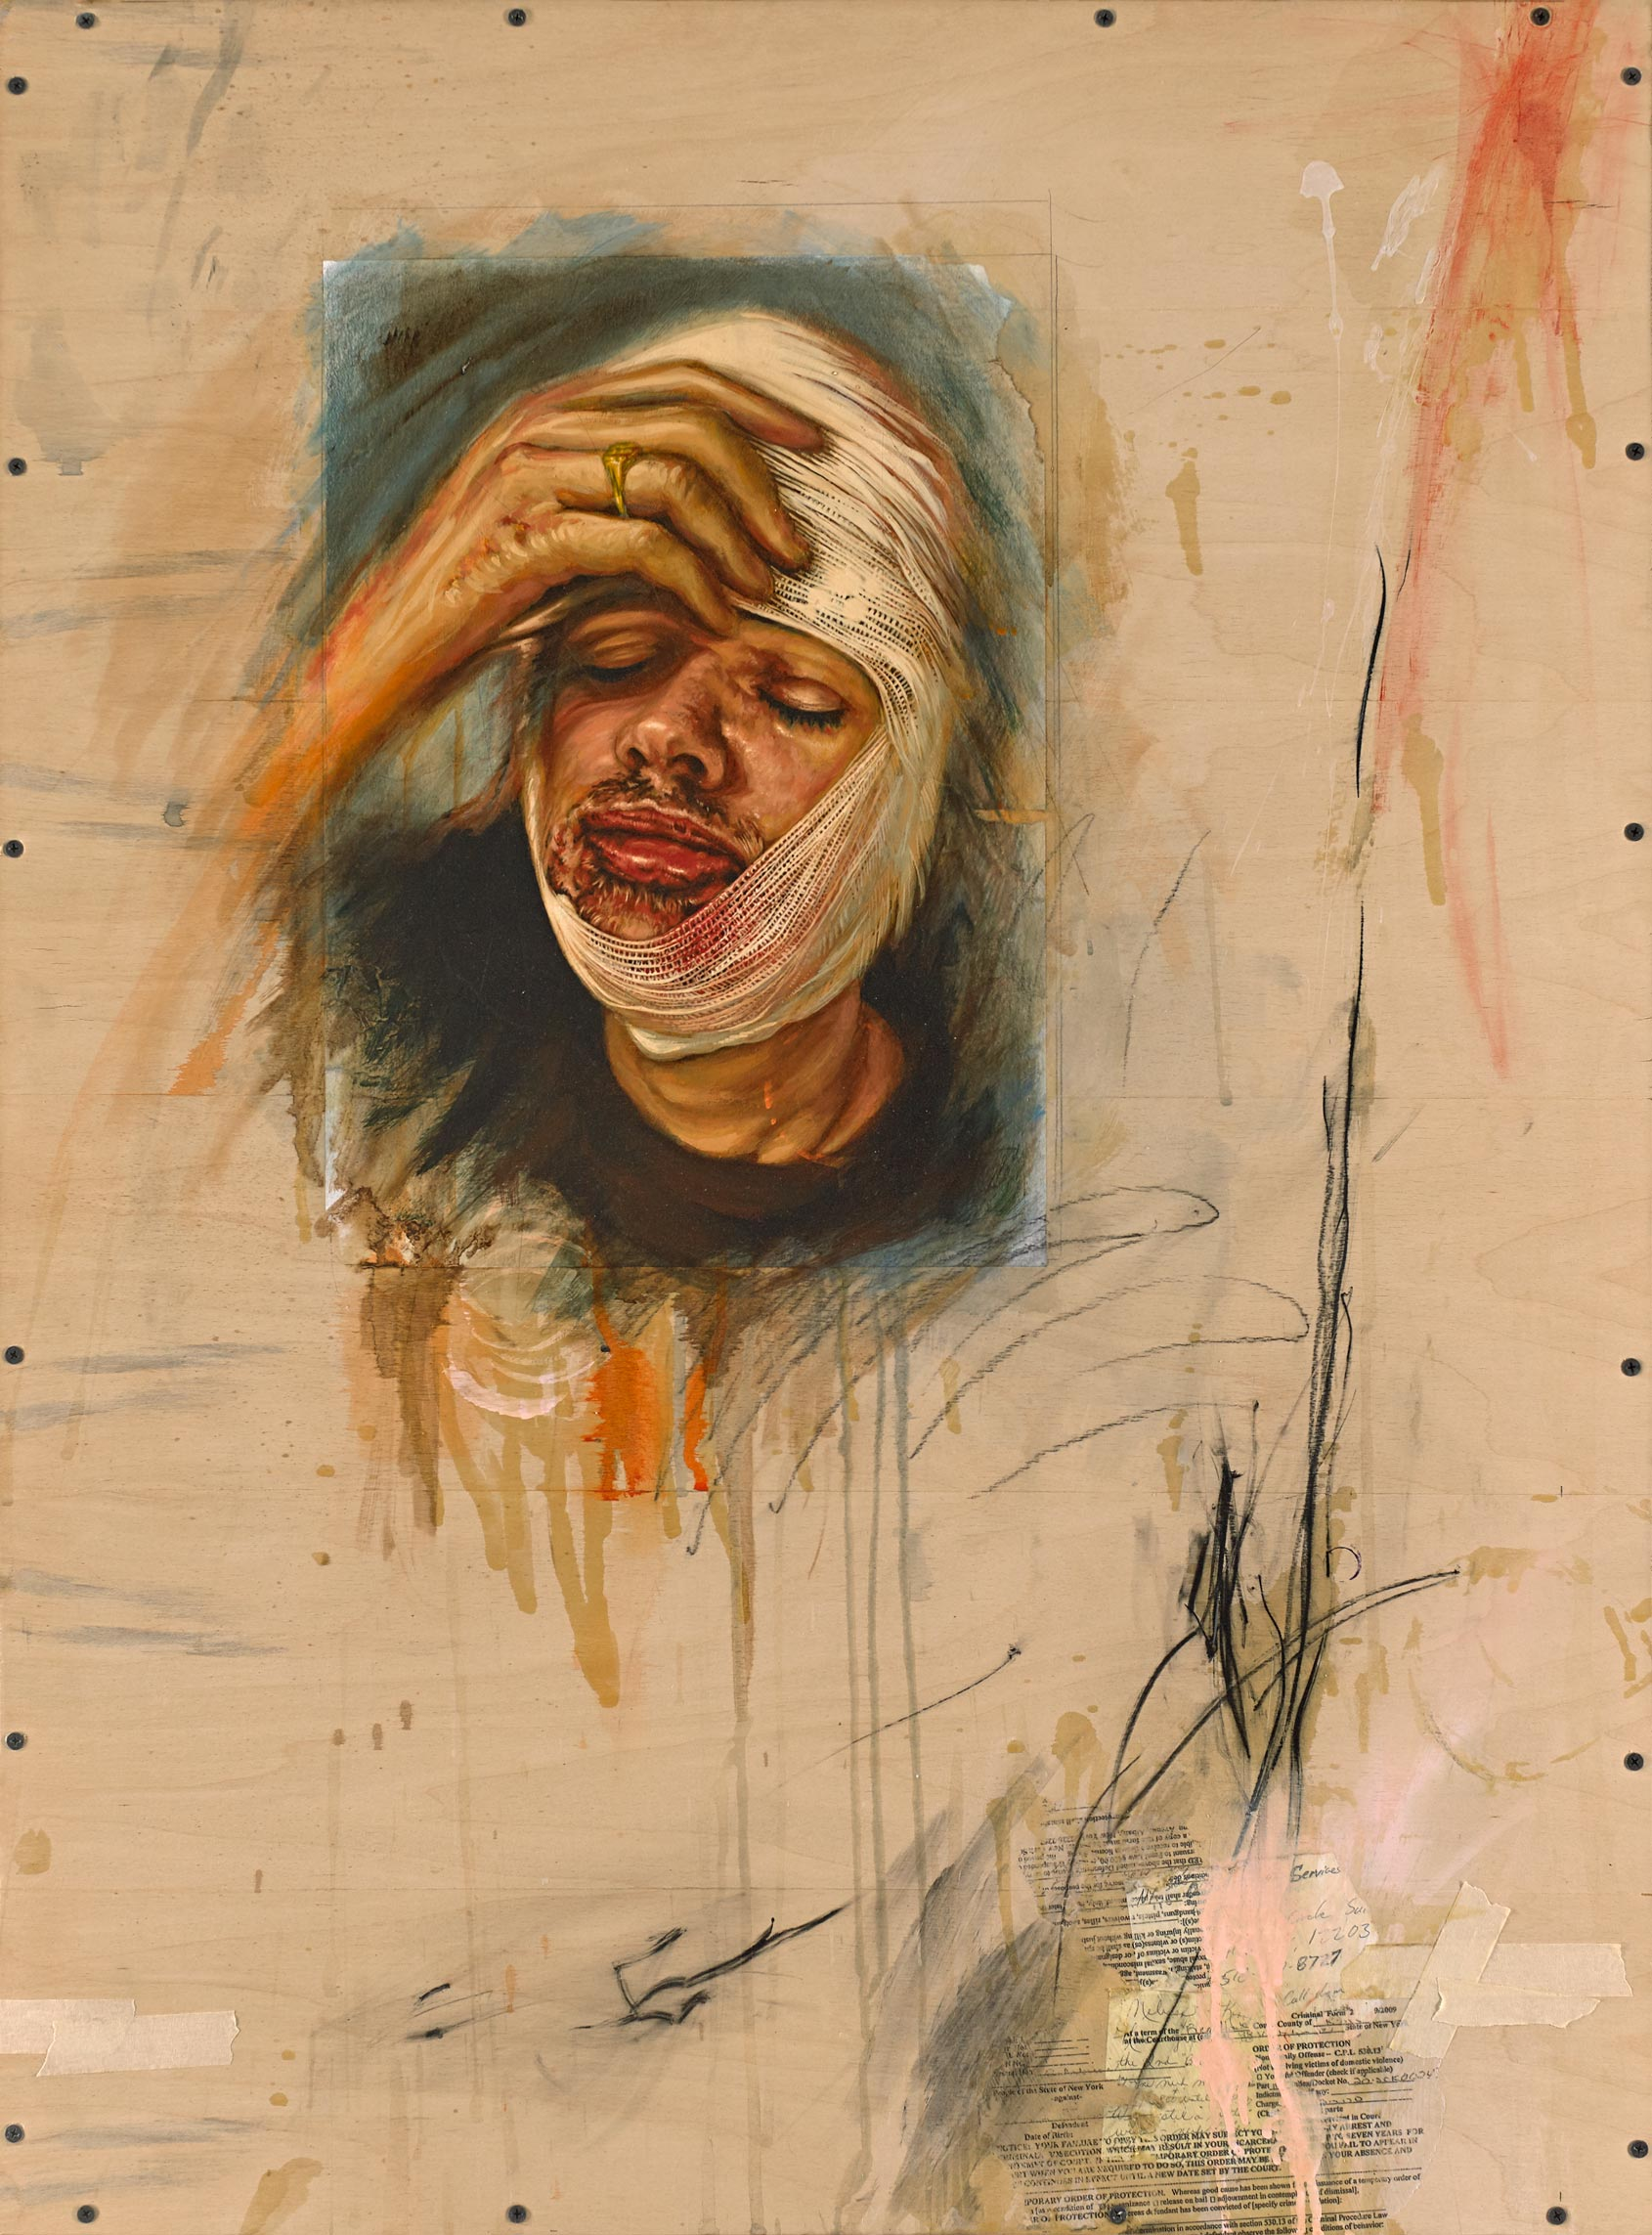 Broken Face Portrait   Mixed Media on Wood Panel 30in x 40in